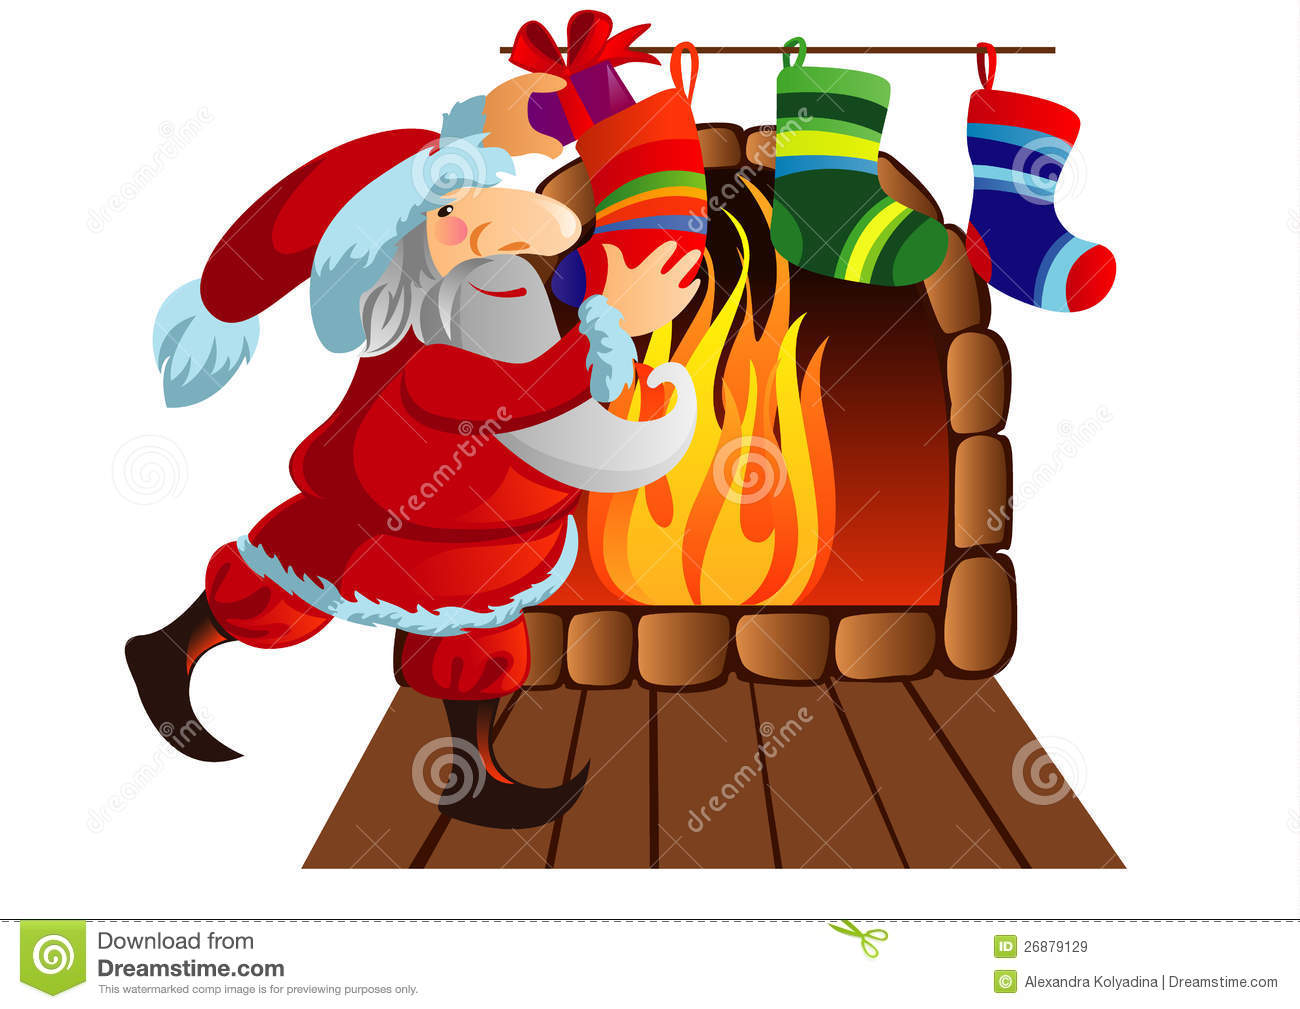 Santa Claus Is Decomposed Gifts In Socks Royalty Free Stock Images.